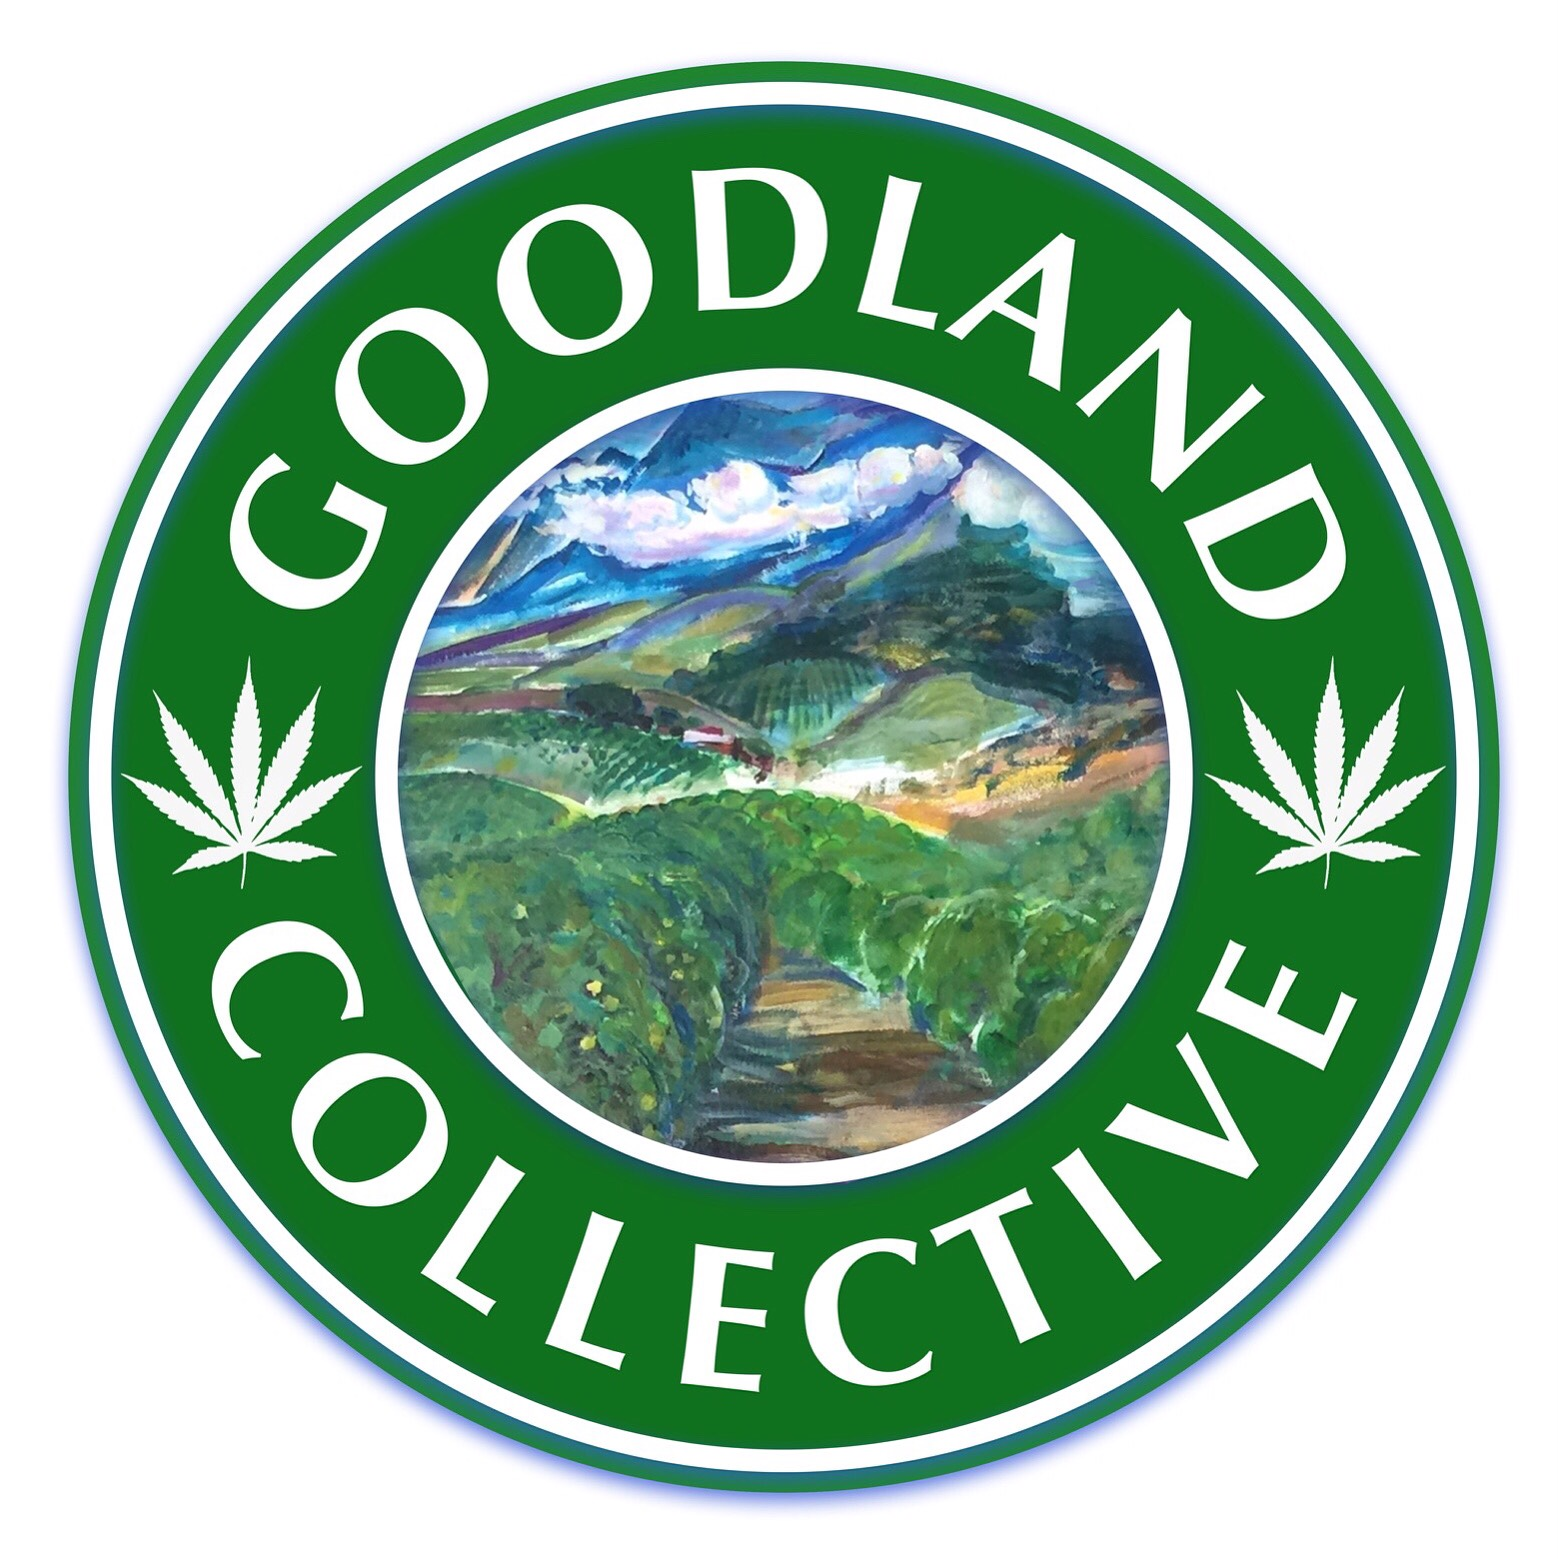 Goodland Collective image